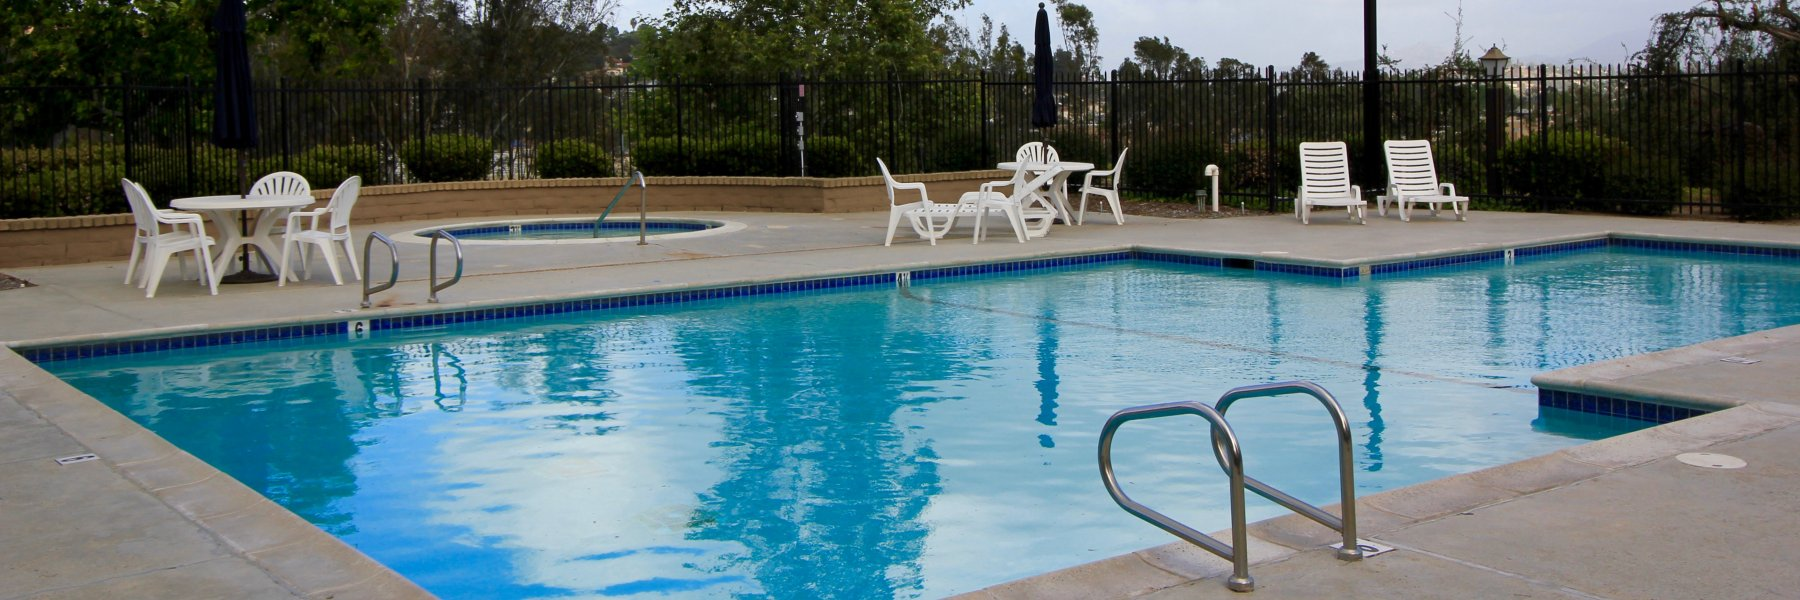 Morningside Woods is a community of homes in Escondido California